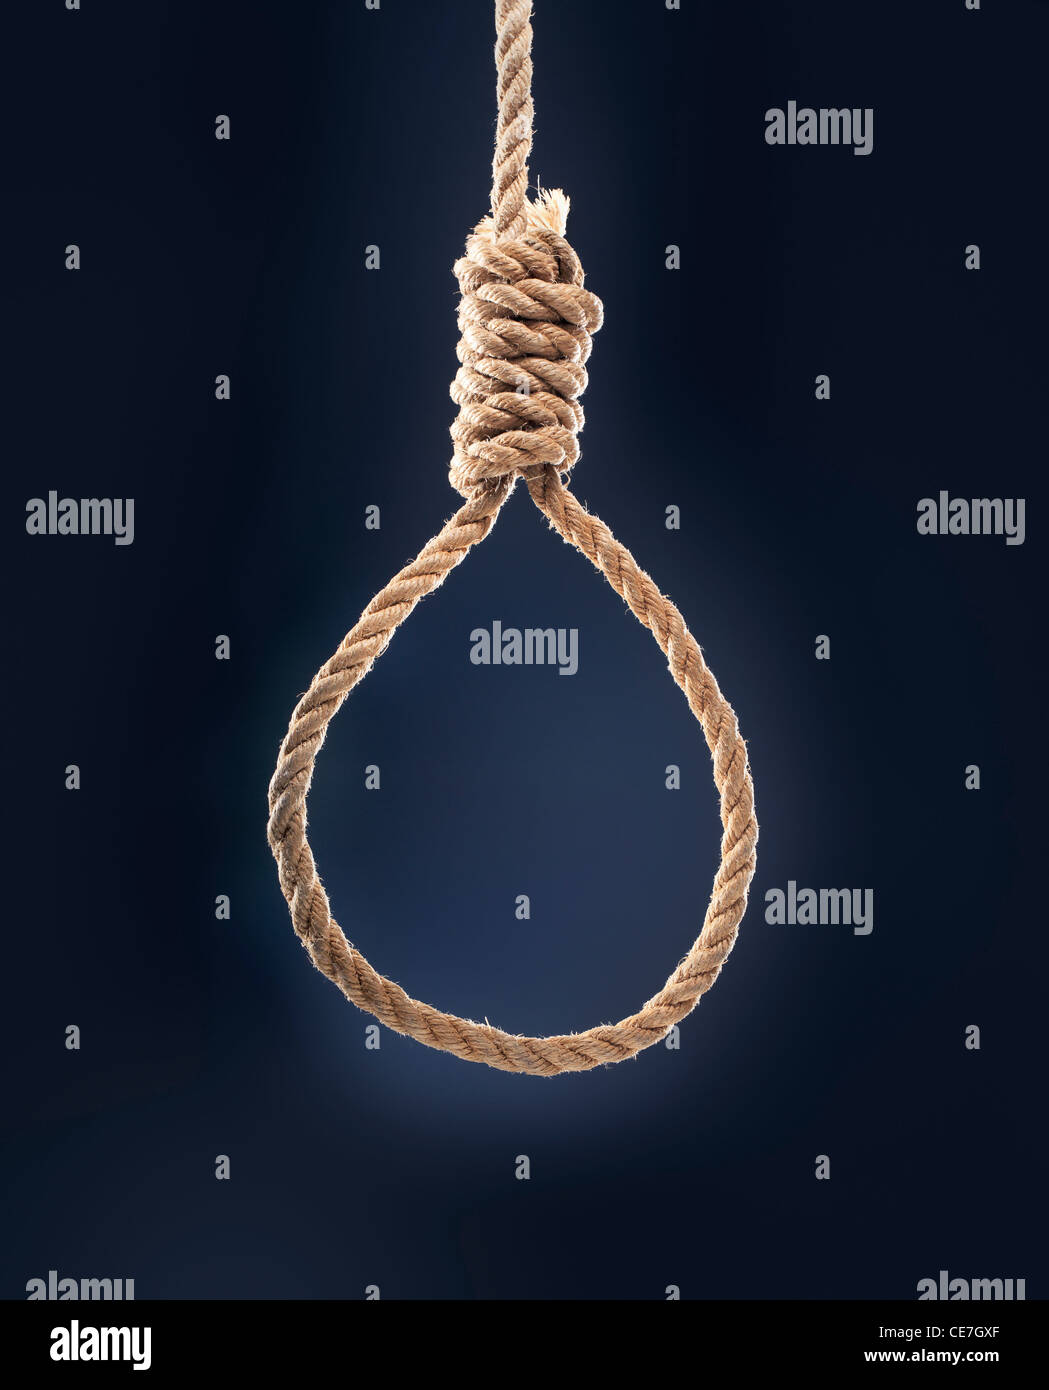 Rope noose with hangman's knot hanging in front of blue background. - Stock Image